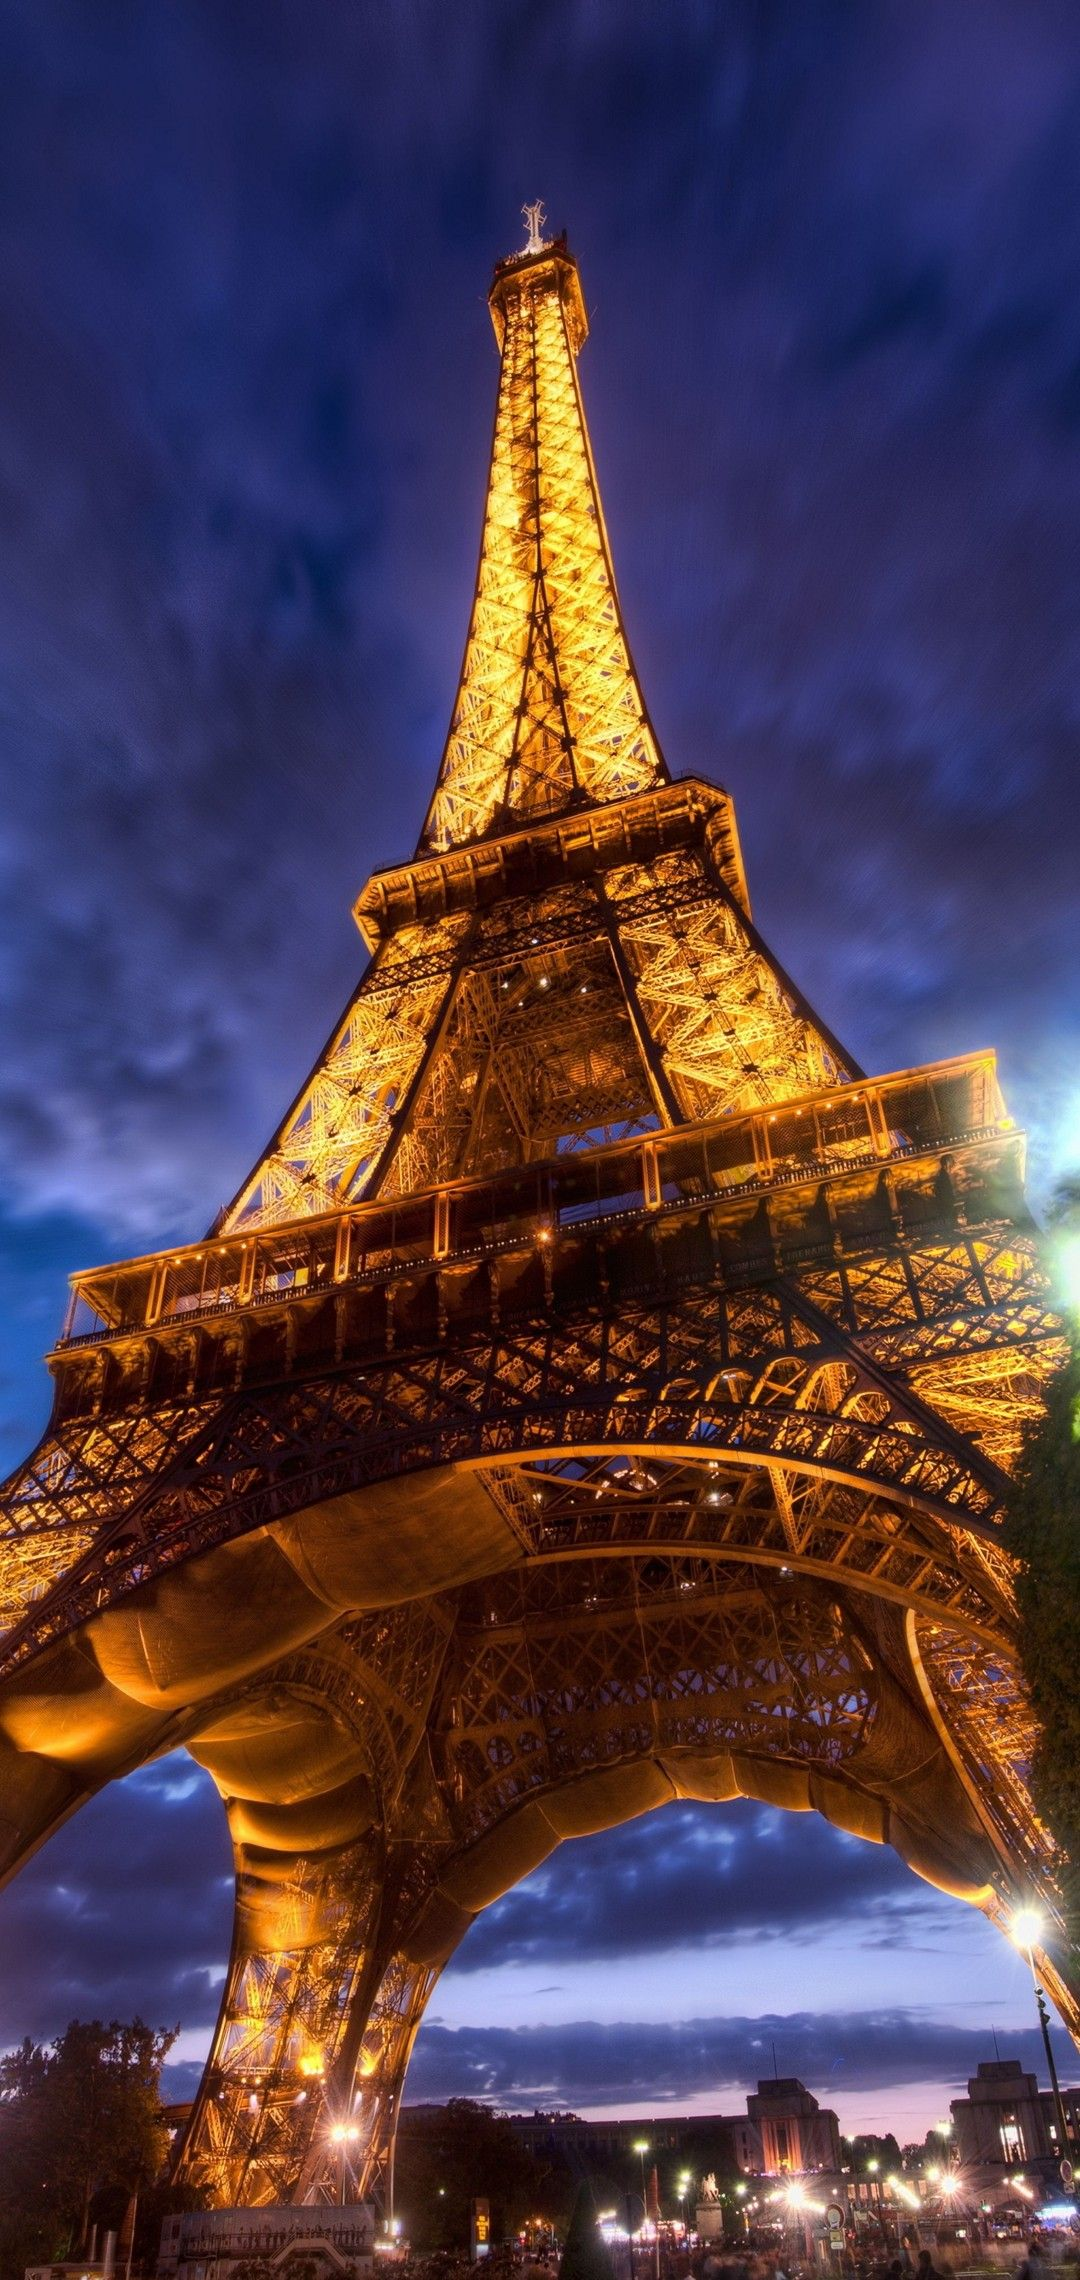 Nokia 7.2 Wallpapers in 2020 Eiffel tower, France